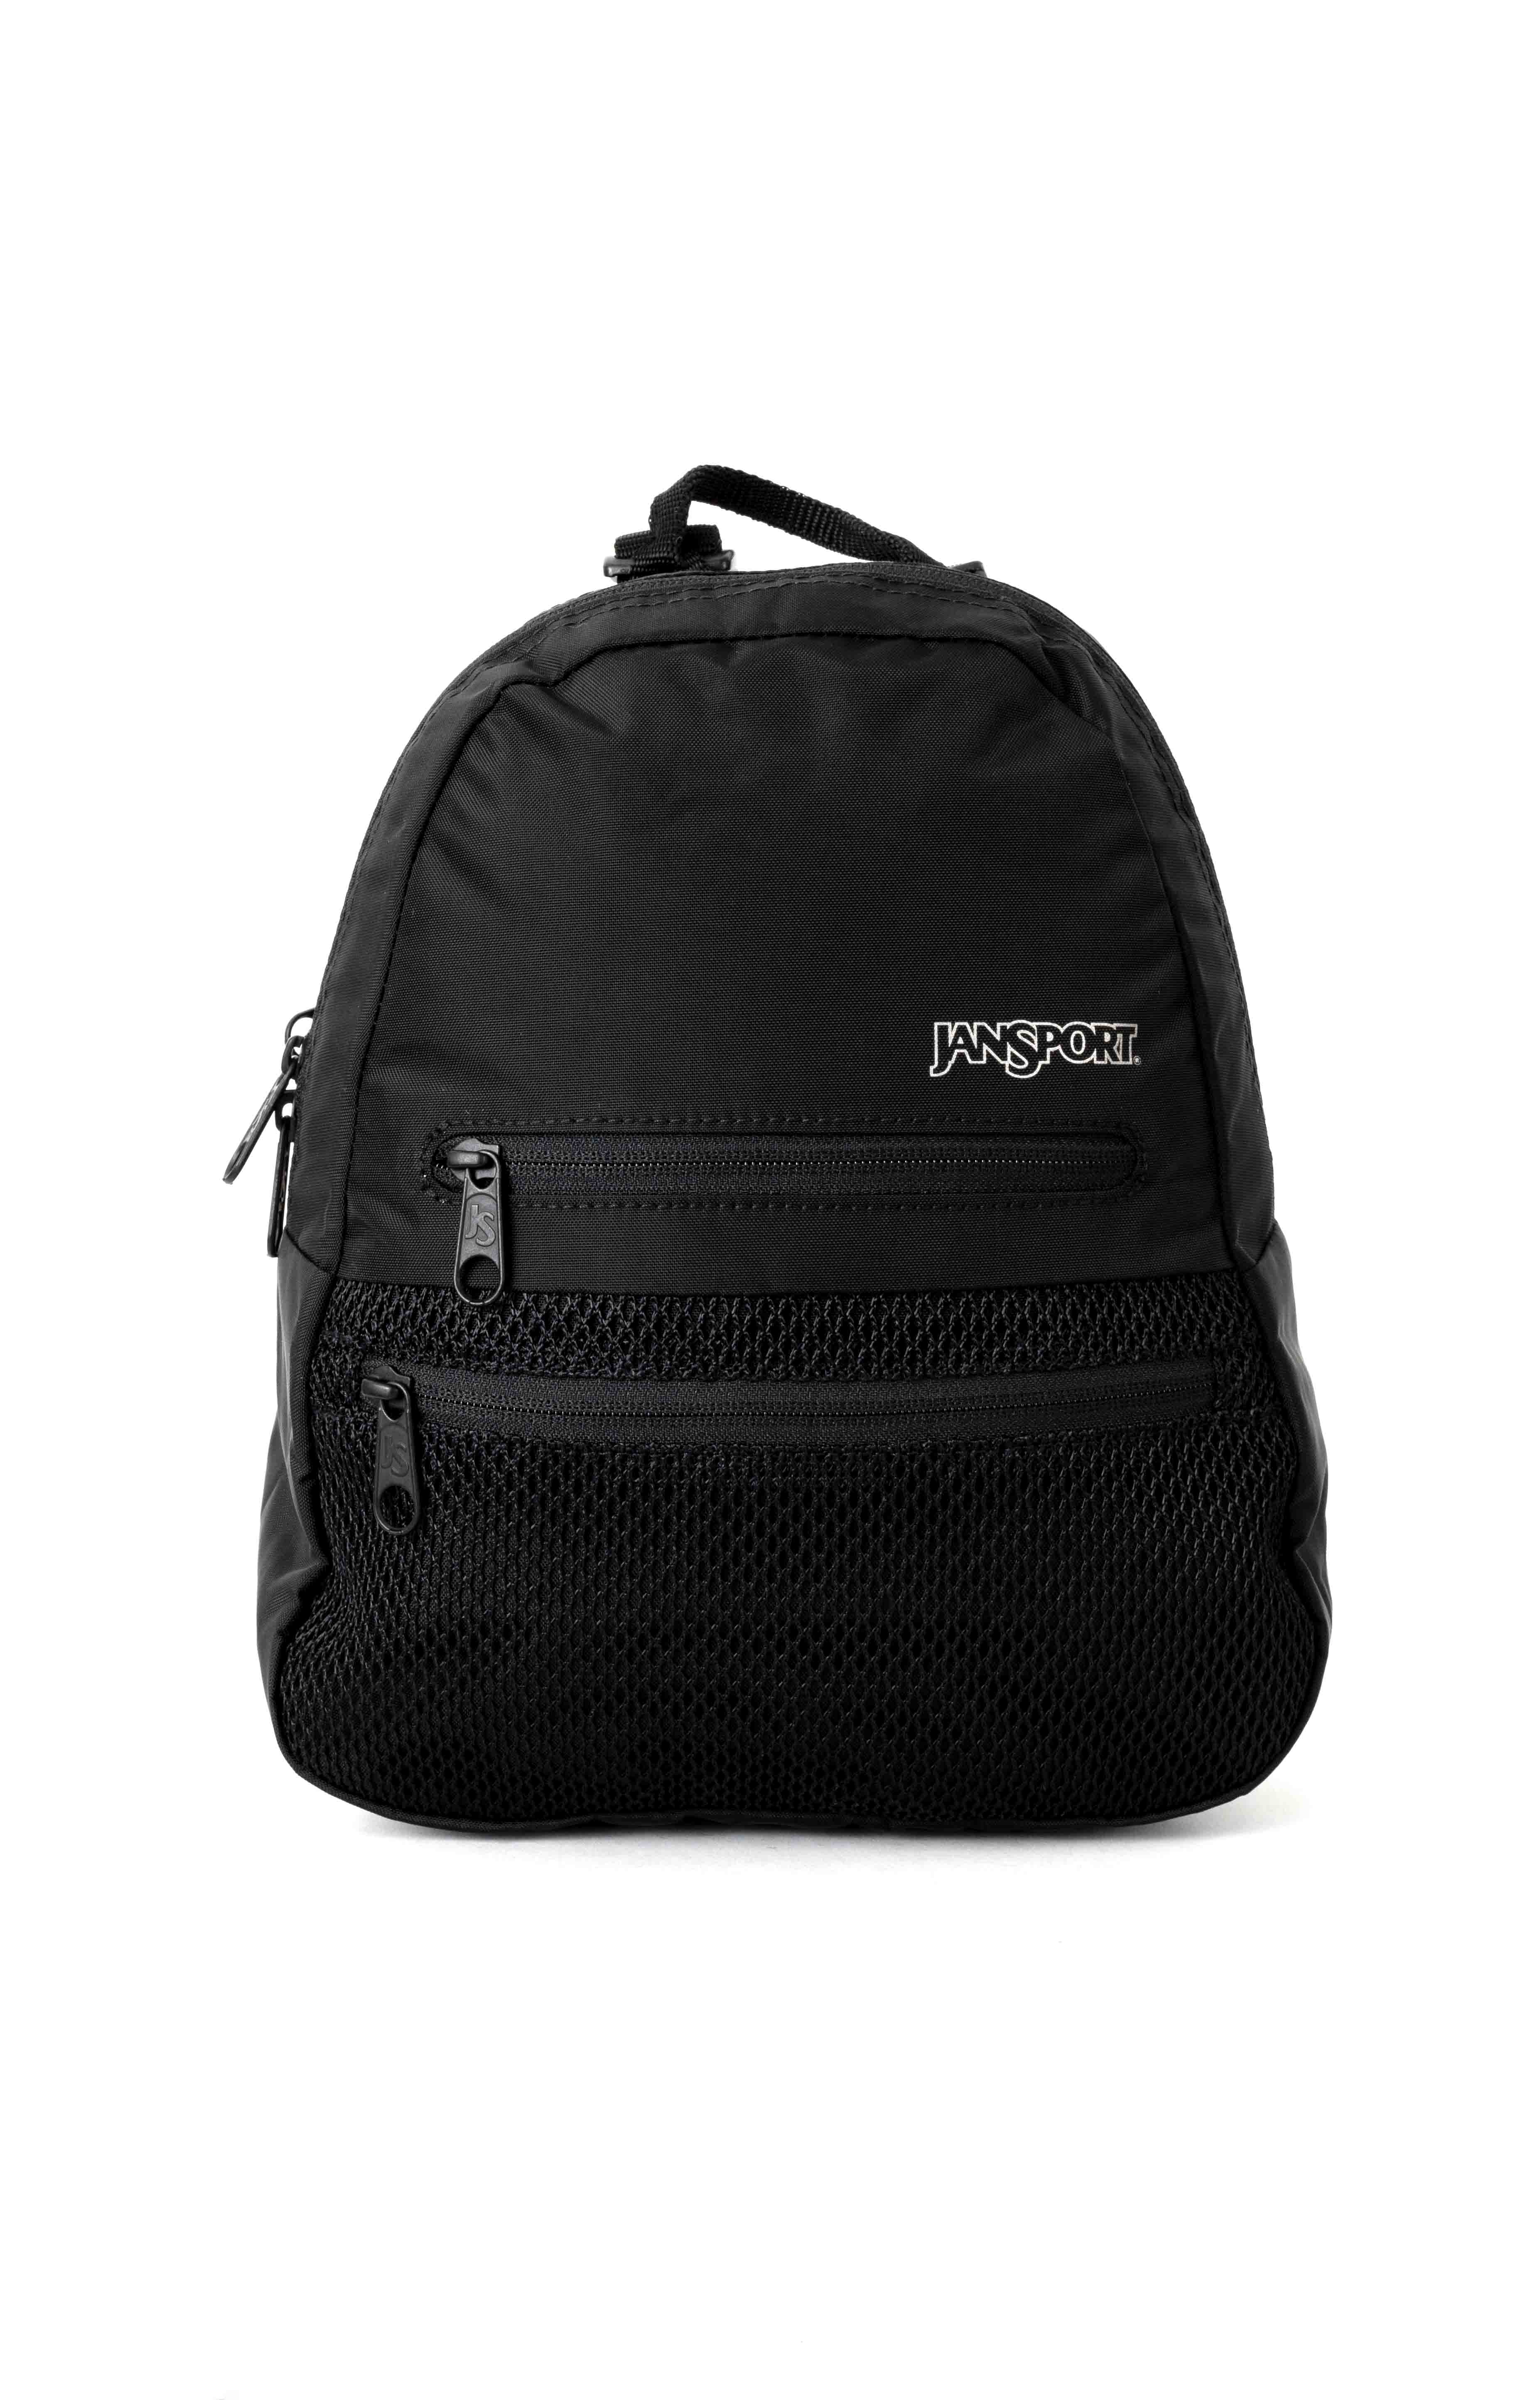 Half Pint TR Backpack - Black